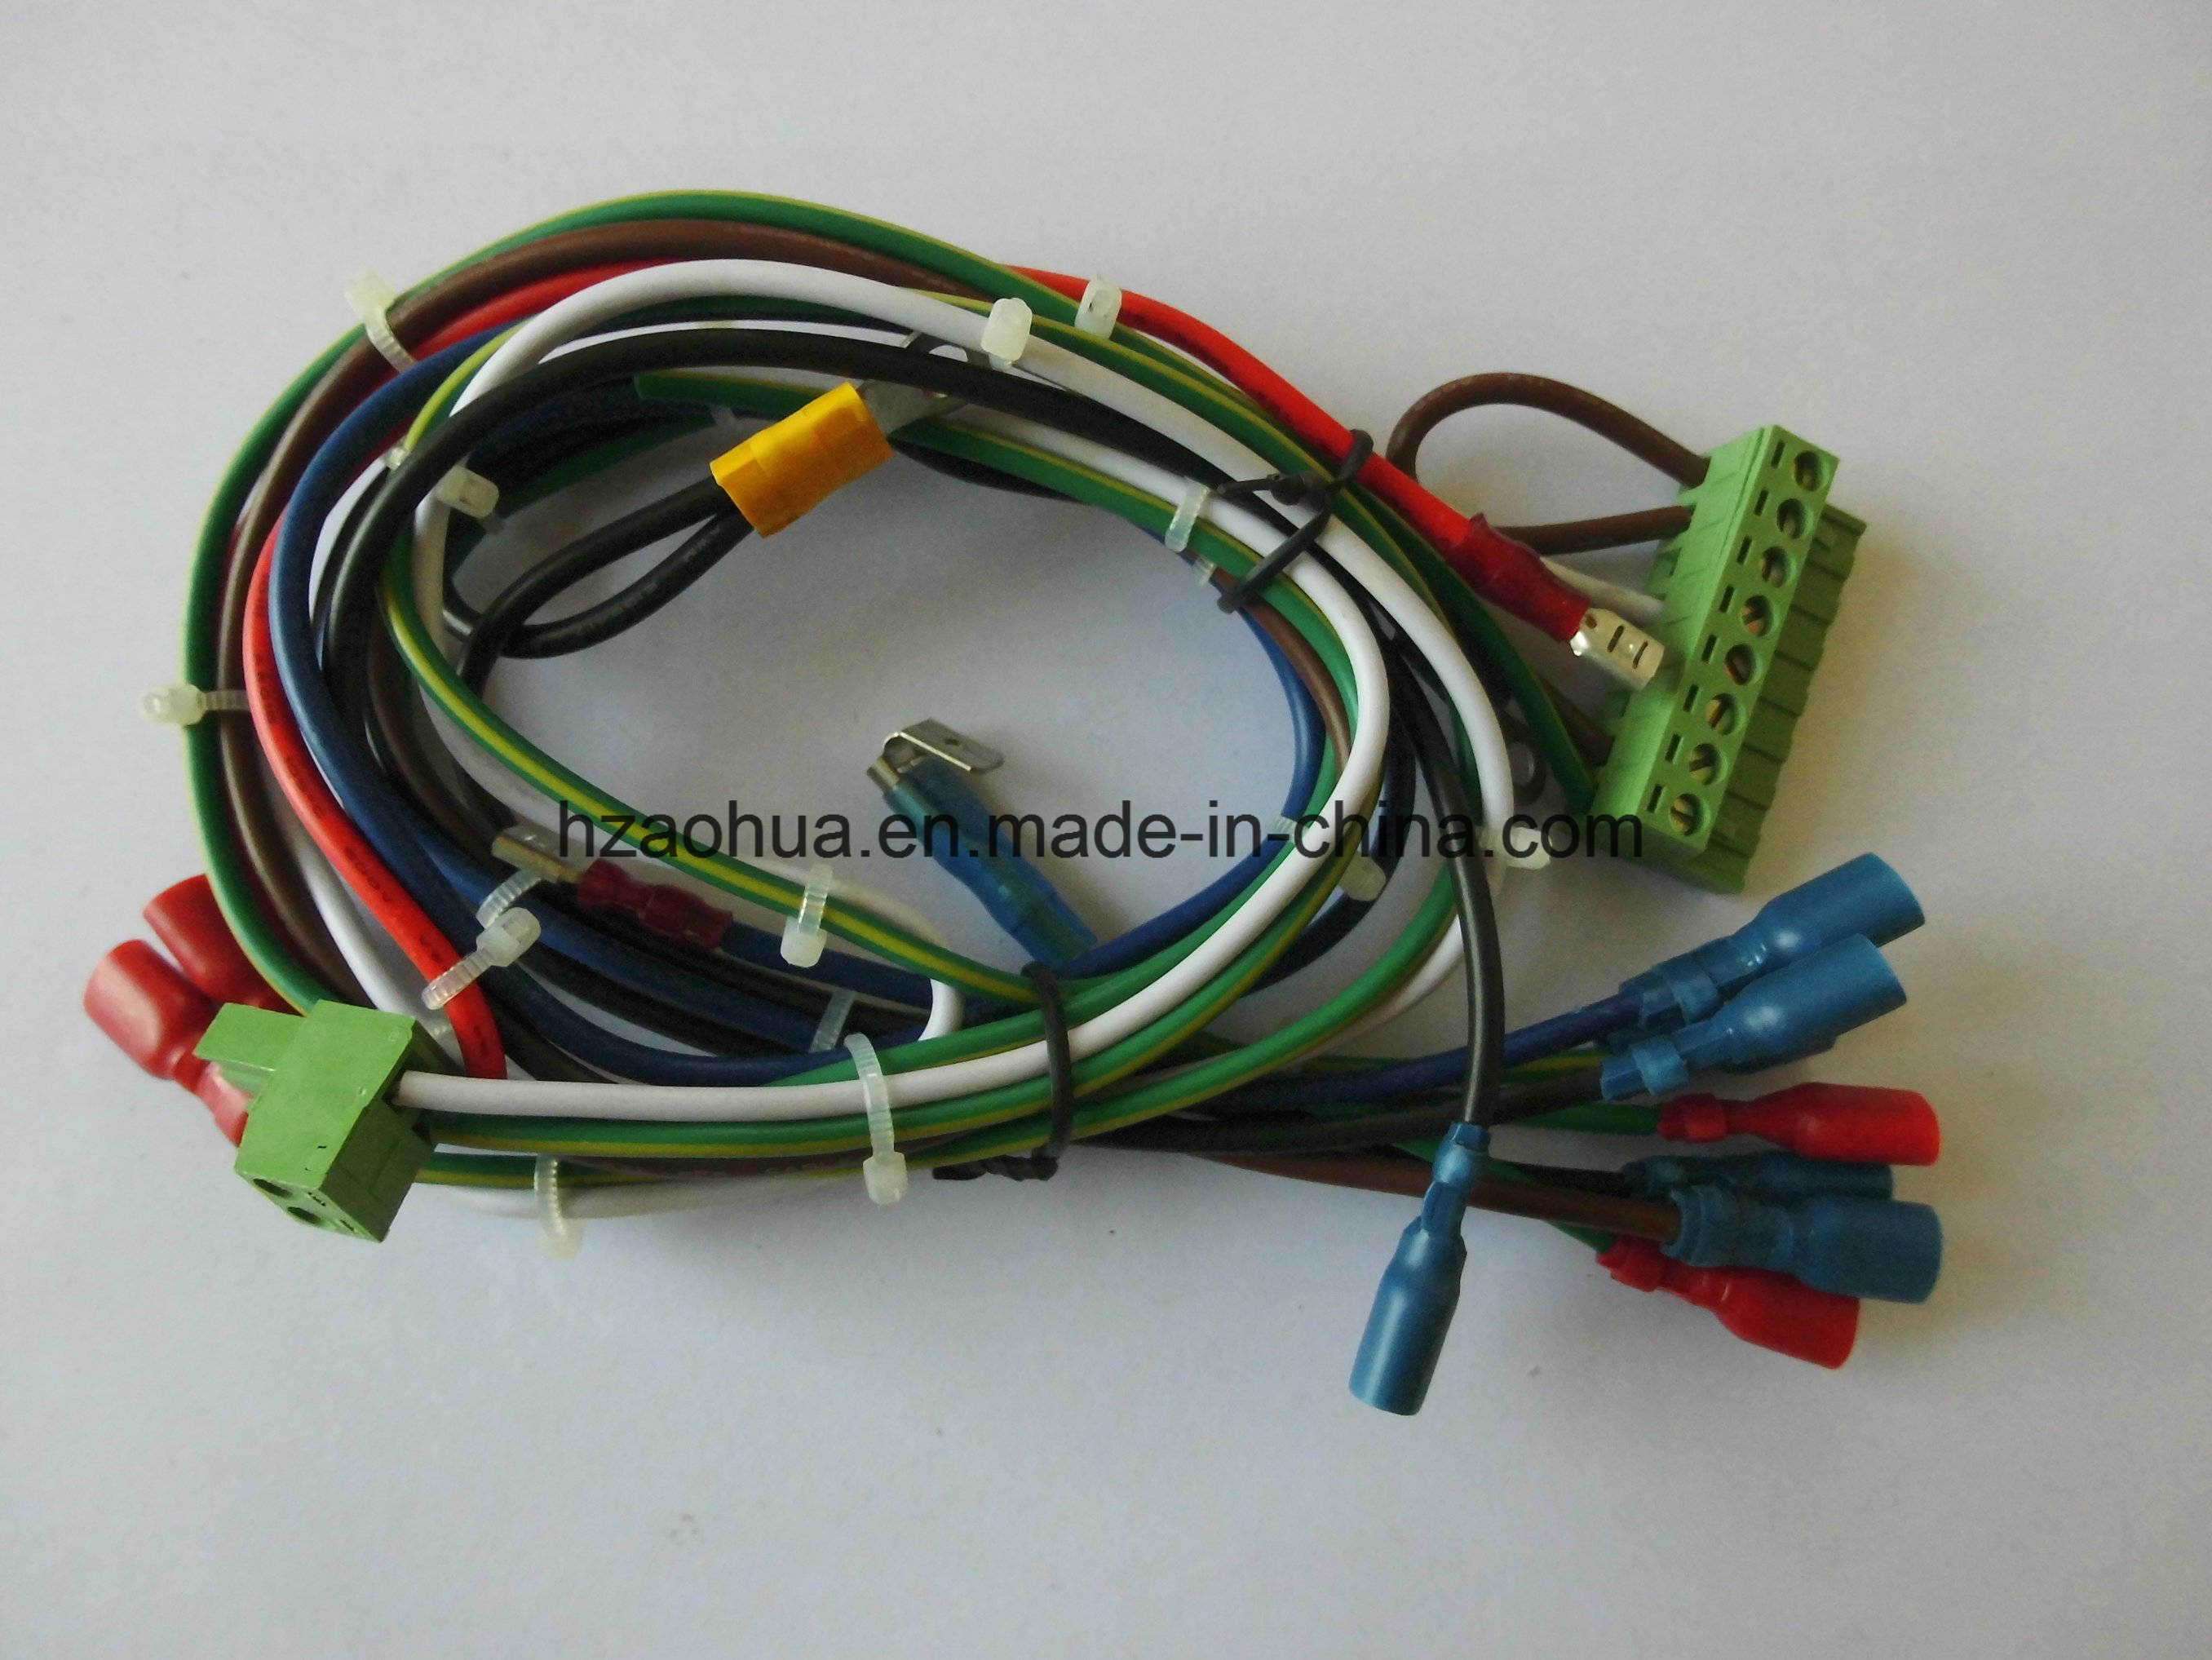 China Power Supply Wire Harness for All Electric Device - China Power Supply  Cable Assembly, Power Supply Wire Harness